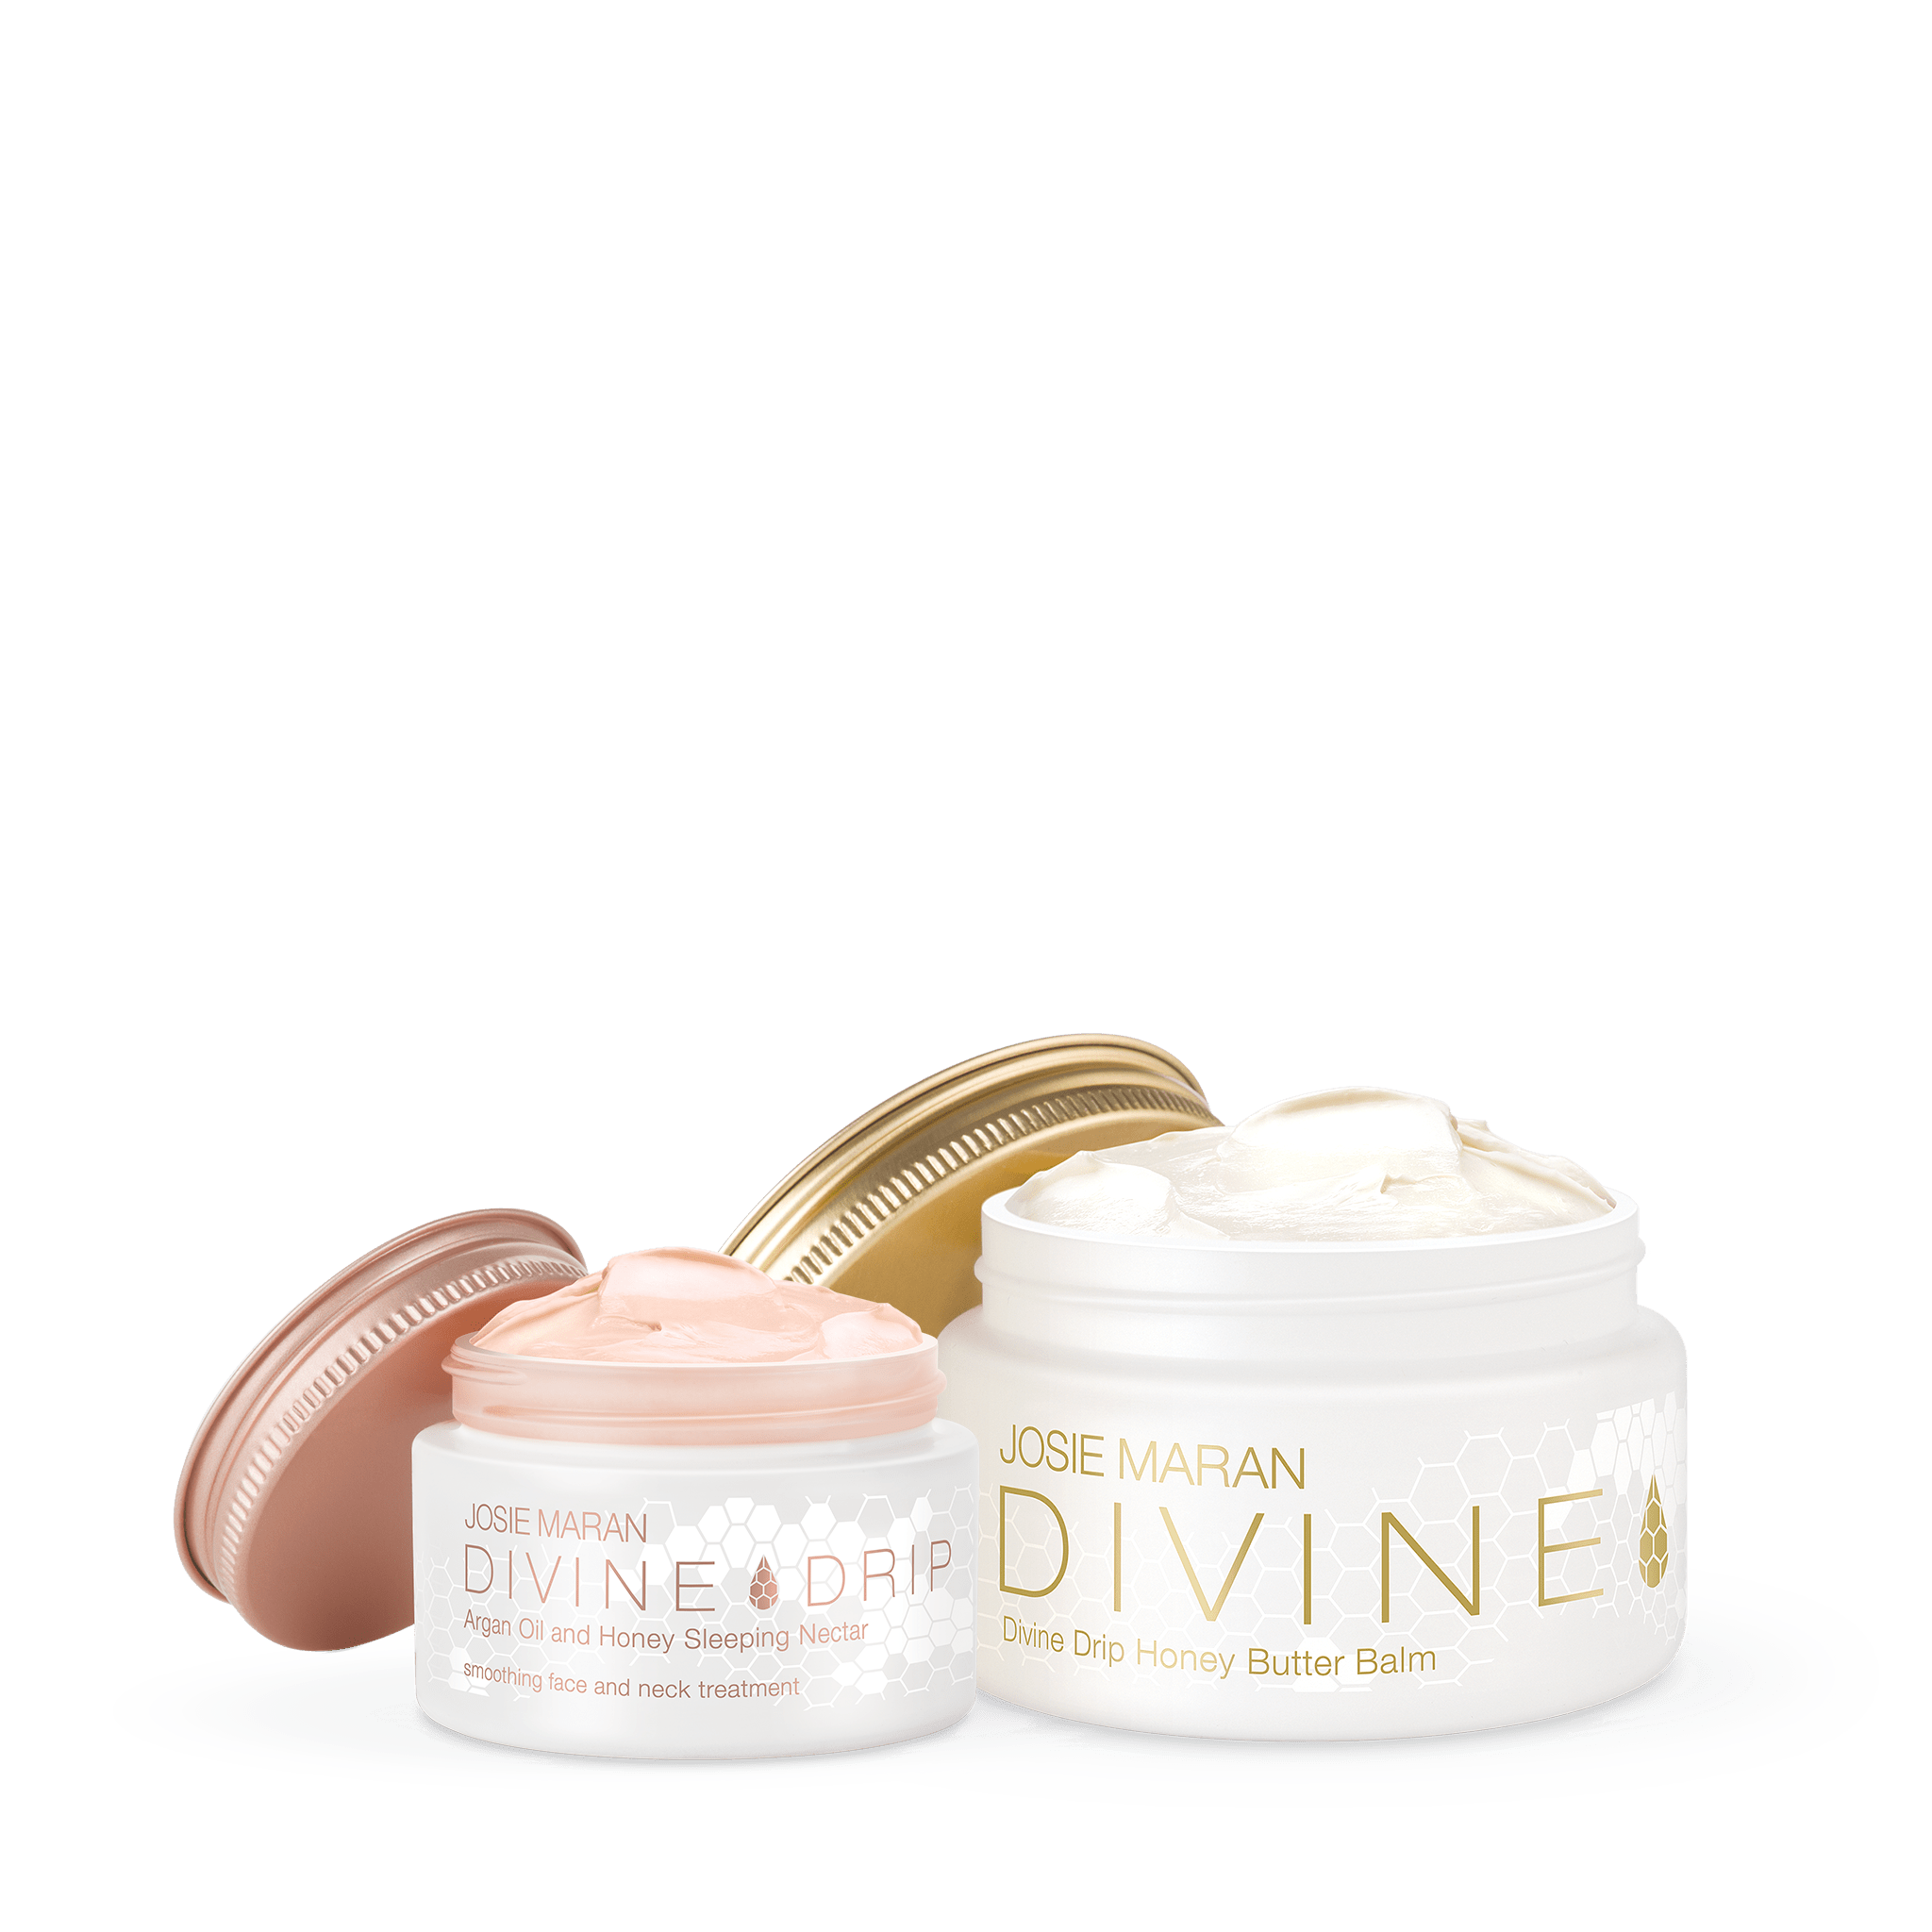 Divine Drip Argan Oil and Honey Face and Body Duo